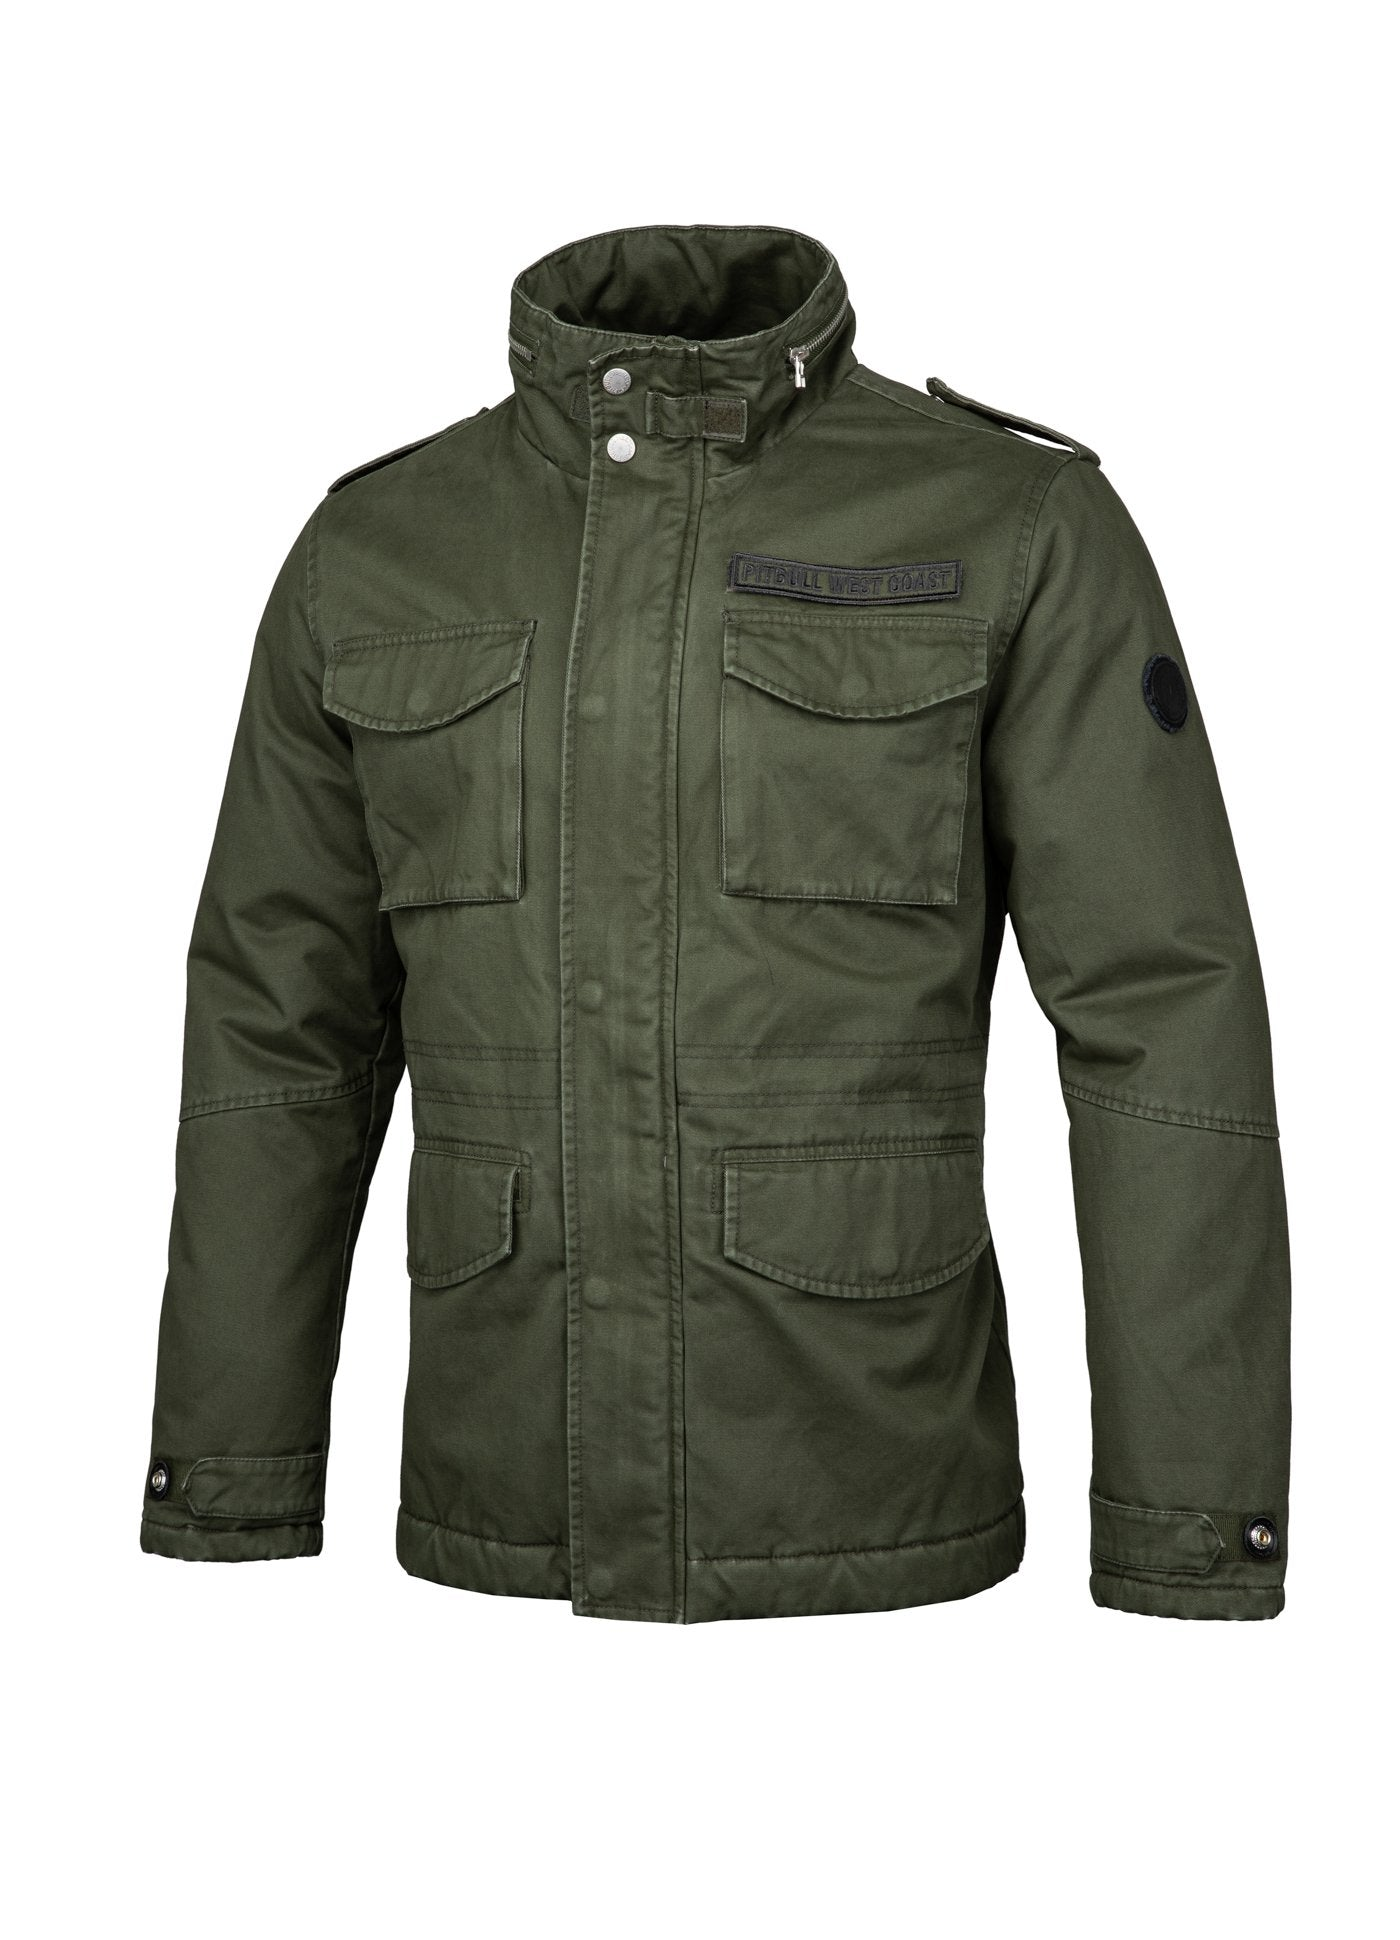 WINTER JACKET MONTEREY OLIVE - pitbullwestcoast